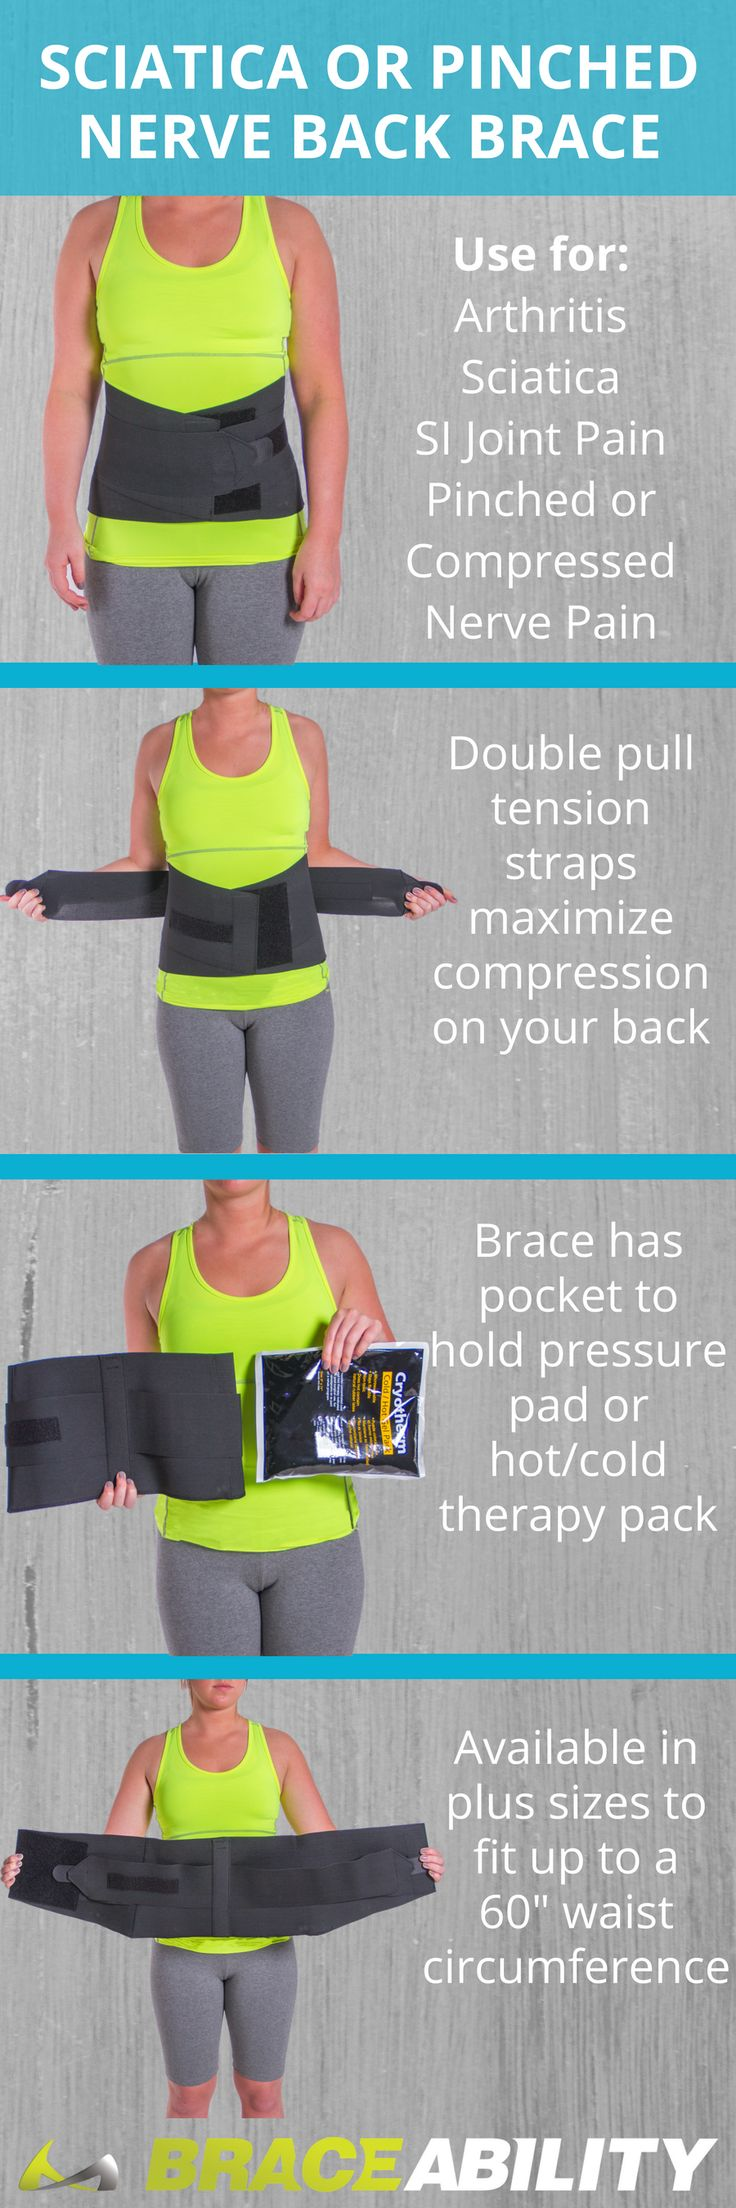 Do you suffer from sciatica or a pinched nerve in your lower back? This compression brace helps tremendously reduce your pain and discomfort from this spinal condition. This lower back wrap features a back pocket for hot/cold inserts, which is the best form of treatment for a pinched nerve. Check out the brace here for more features! | BraceAbility